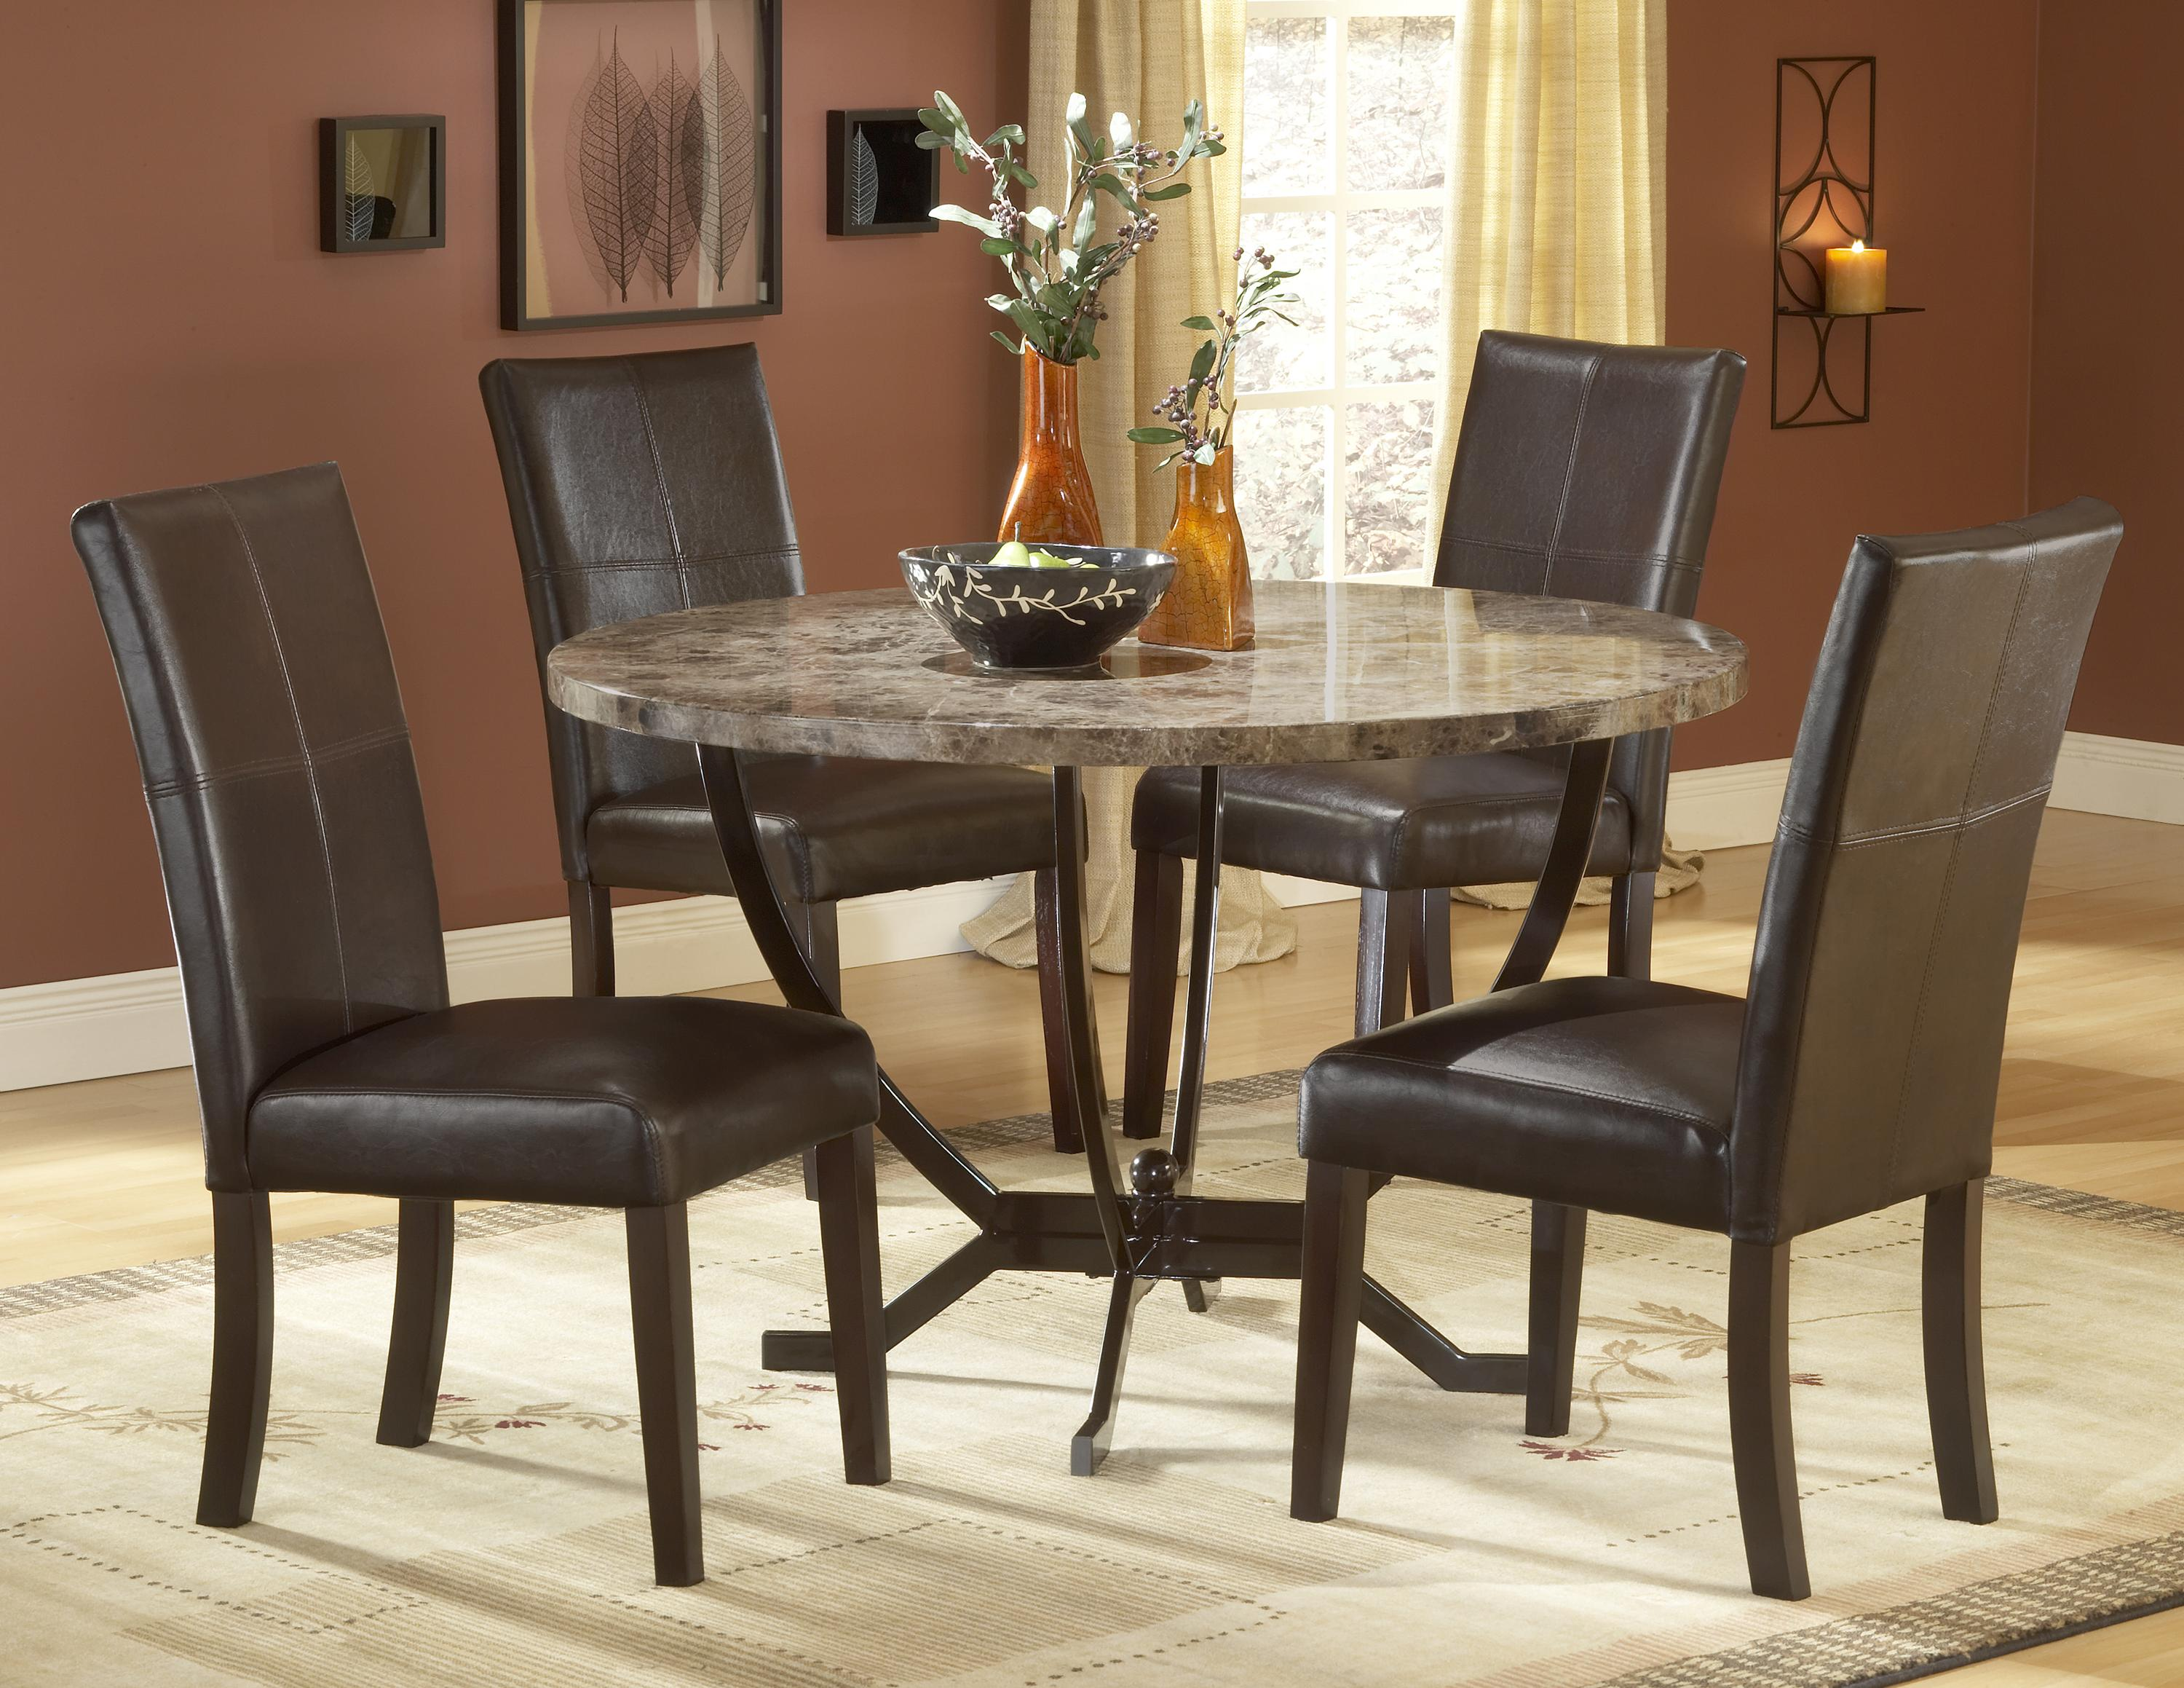 Small dinette set design homesfeed for White dinette sets